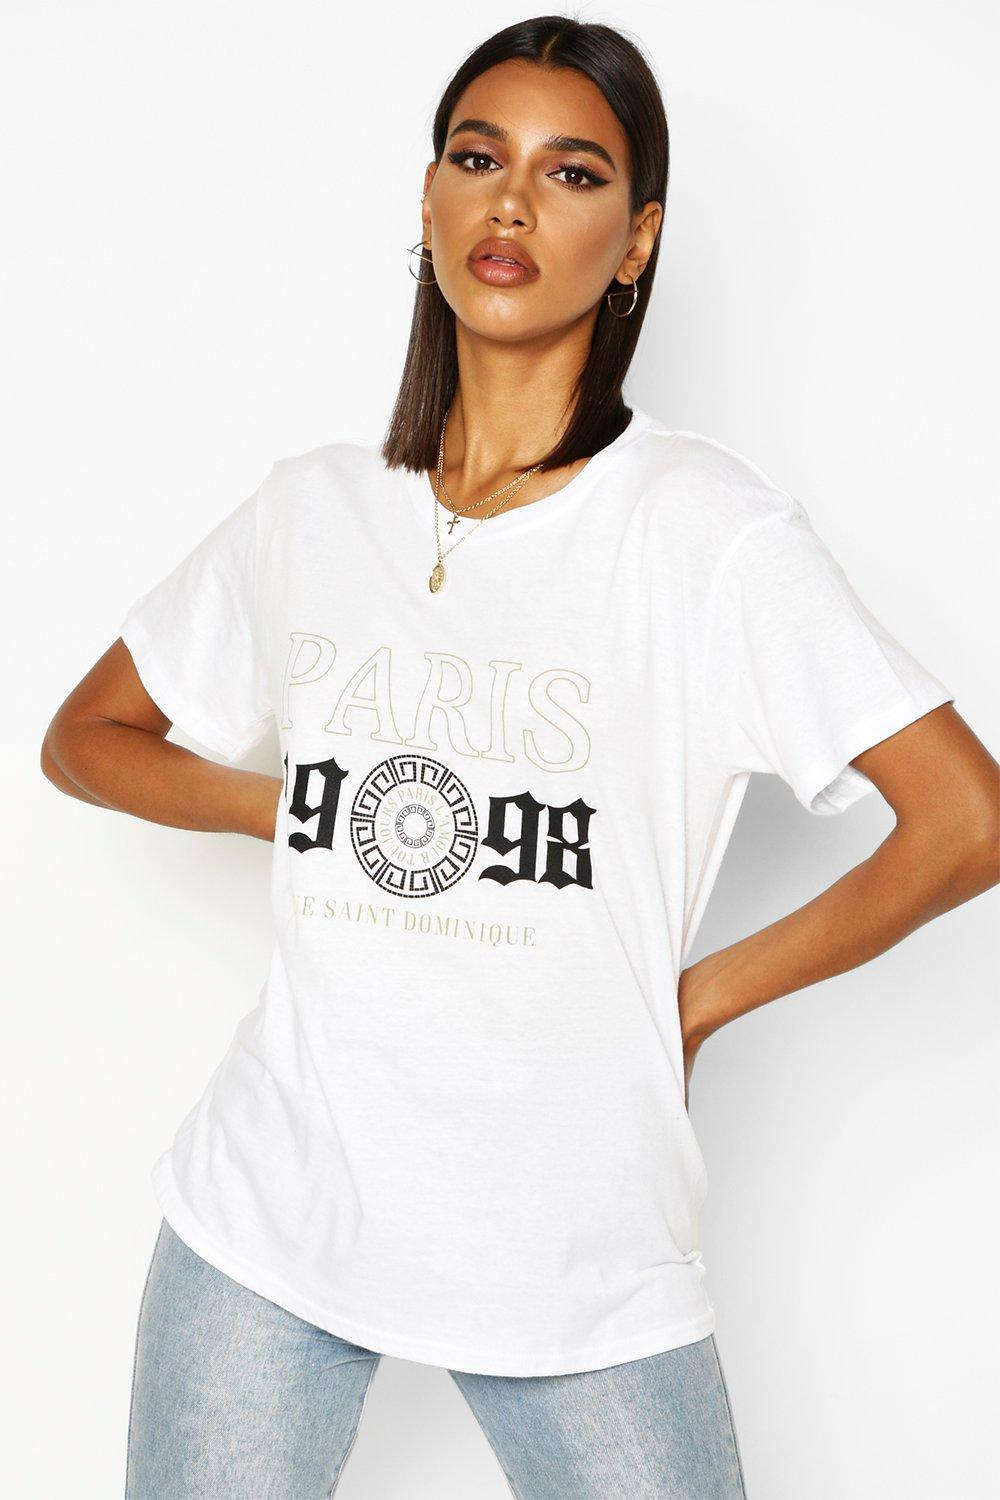 Womens Paris 98 Slogan T-Shirt - white - M, White - Boohoo.com